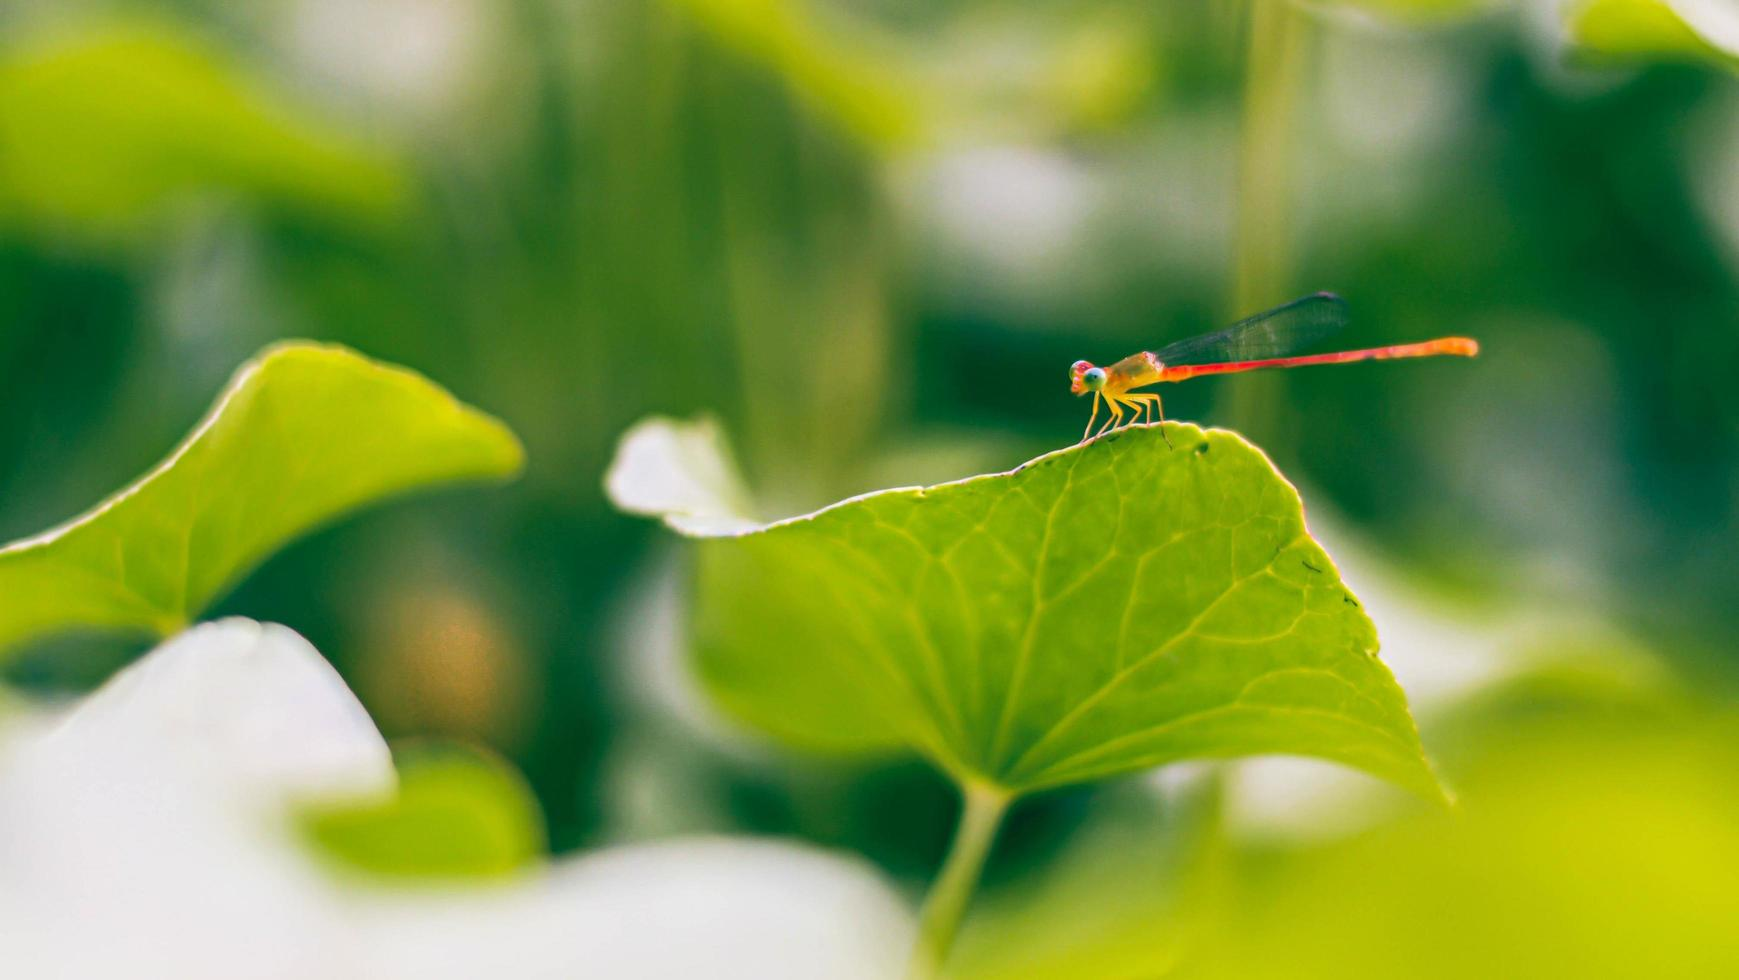 Dragonfly on green leaves photo